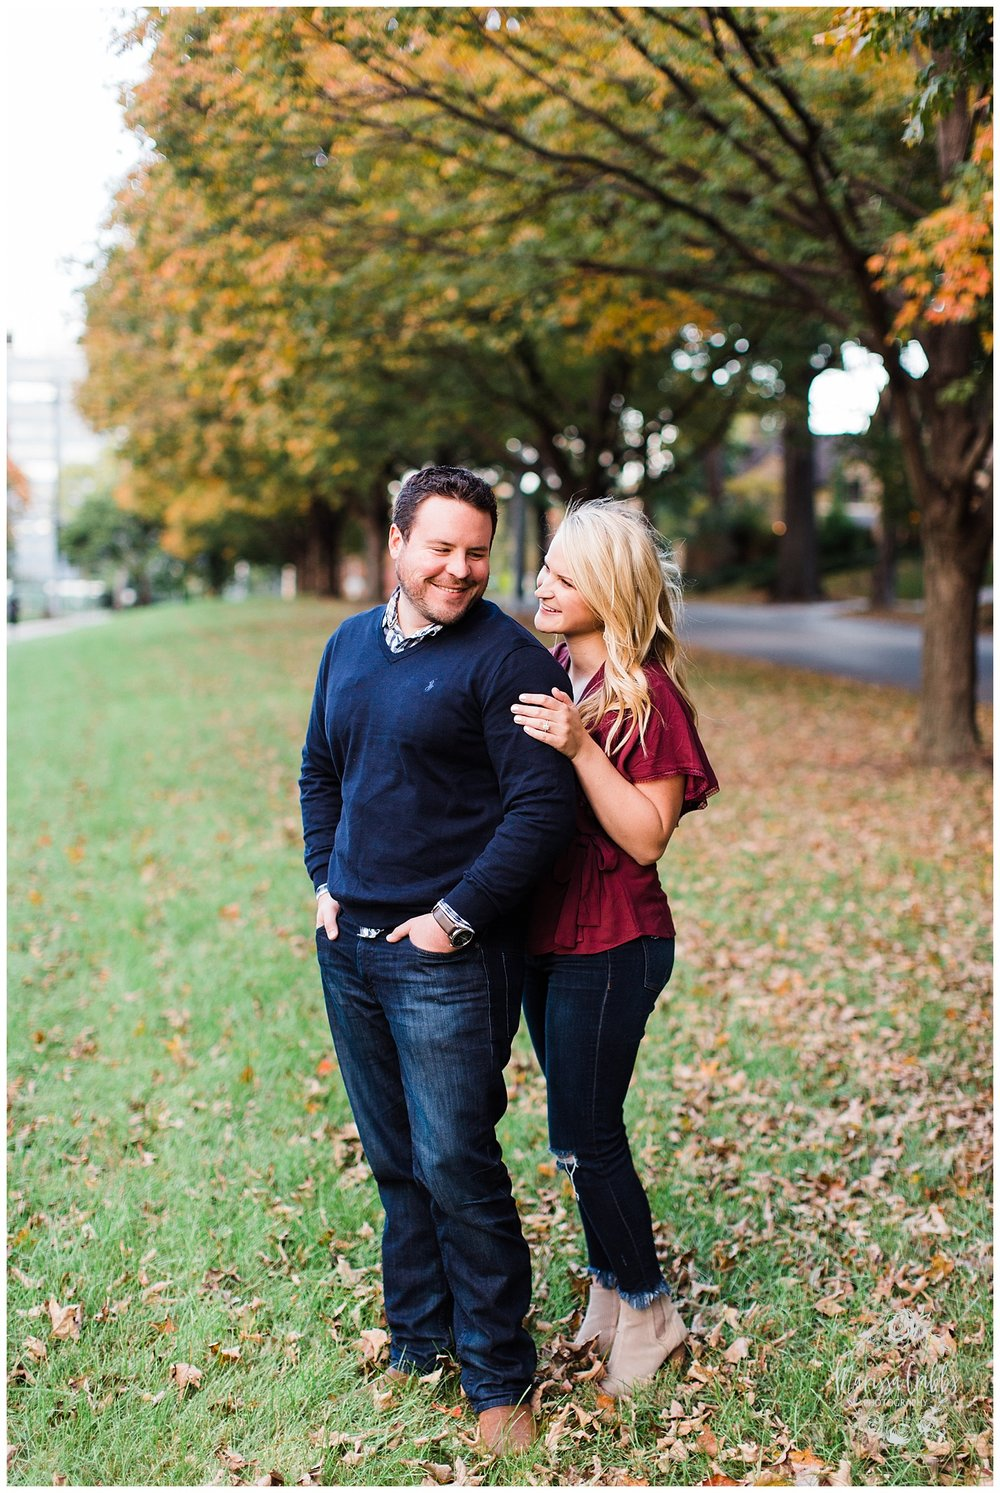 MEGN AND JAMES ENGAGEMENT | MARISSA CRIBBS PHOTOGRAPHY_3520.jpg